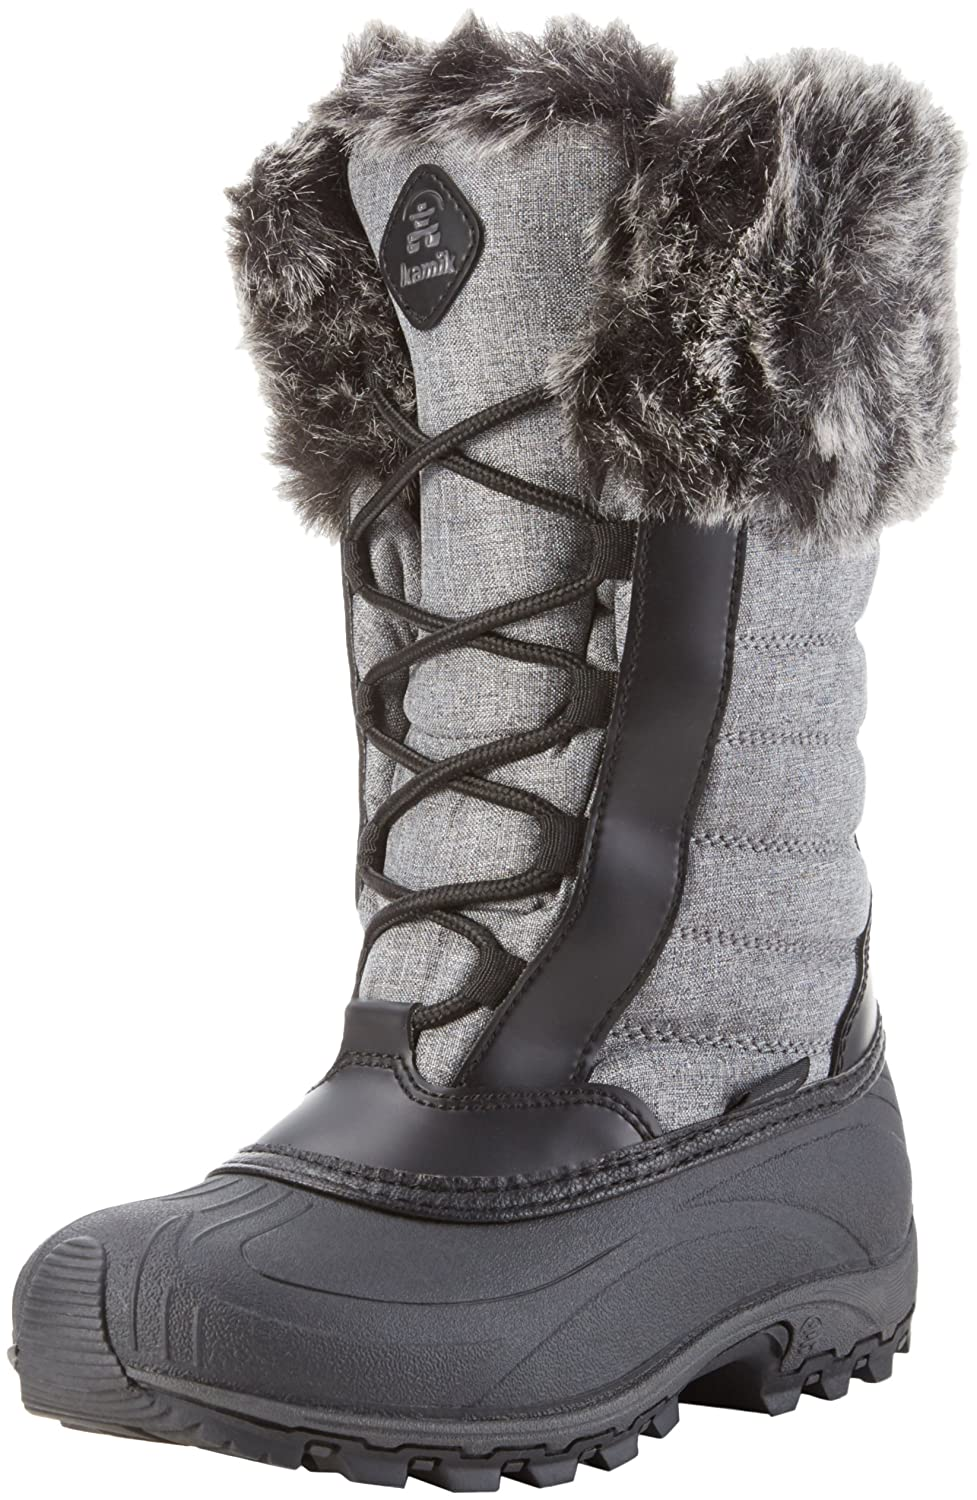 Kamik Women's Haley Snow Boot B0198WT4LQ 9 B(M) US|Charcoal